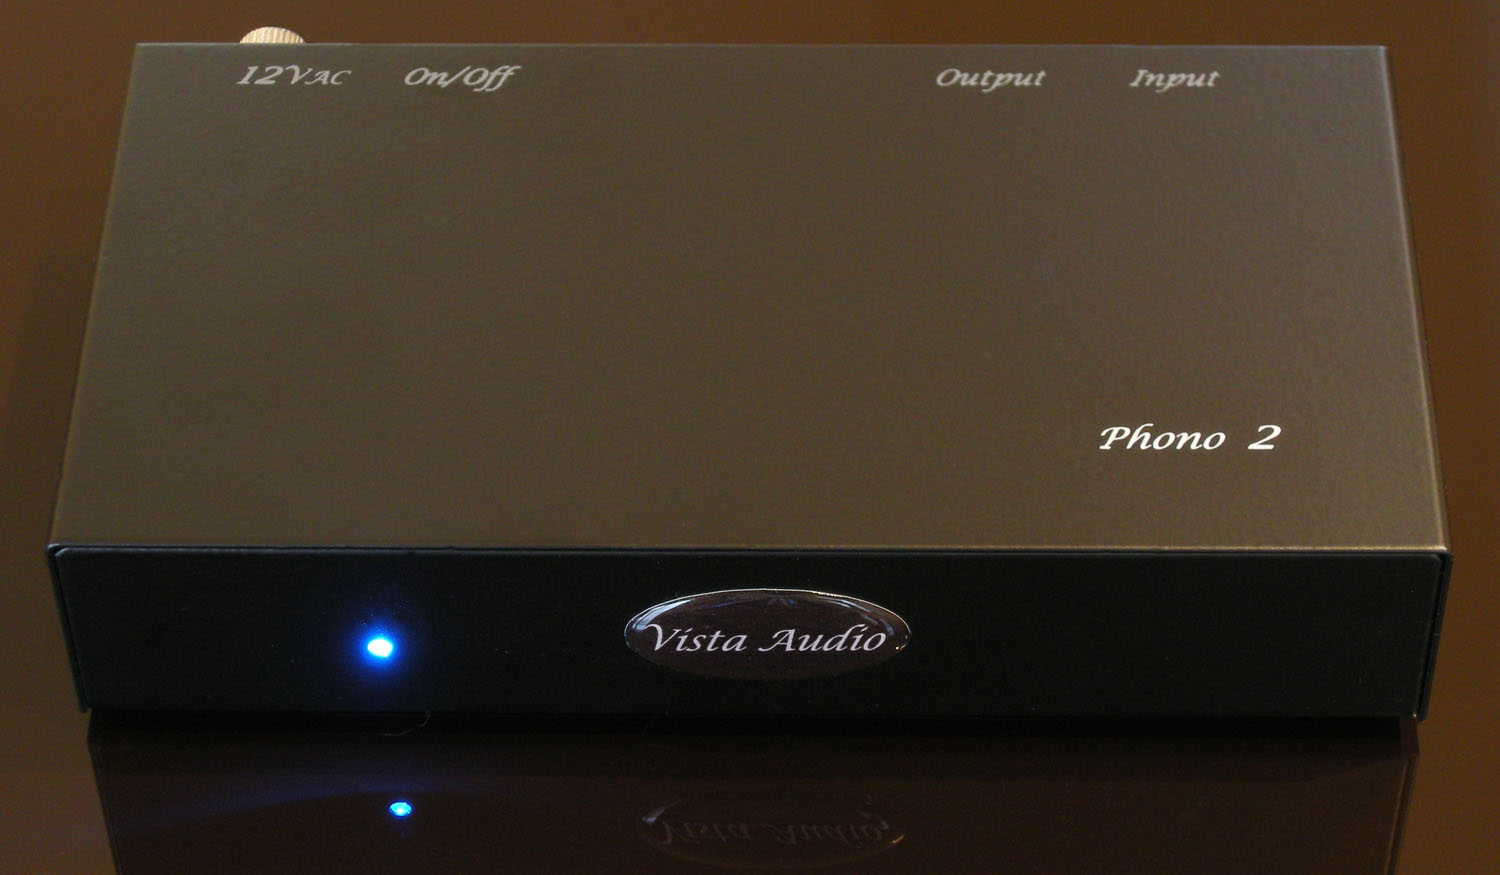 Vista Audio One Step Ahead Phono Preamp Circuit 2 Front The Robust Steel Chassis Houses Preamplifier Circuits